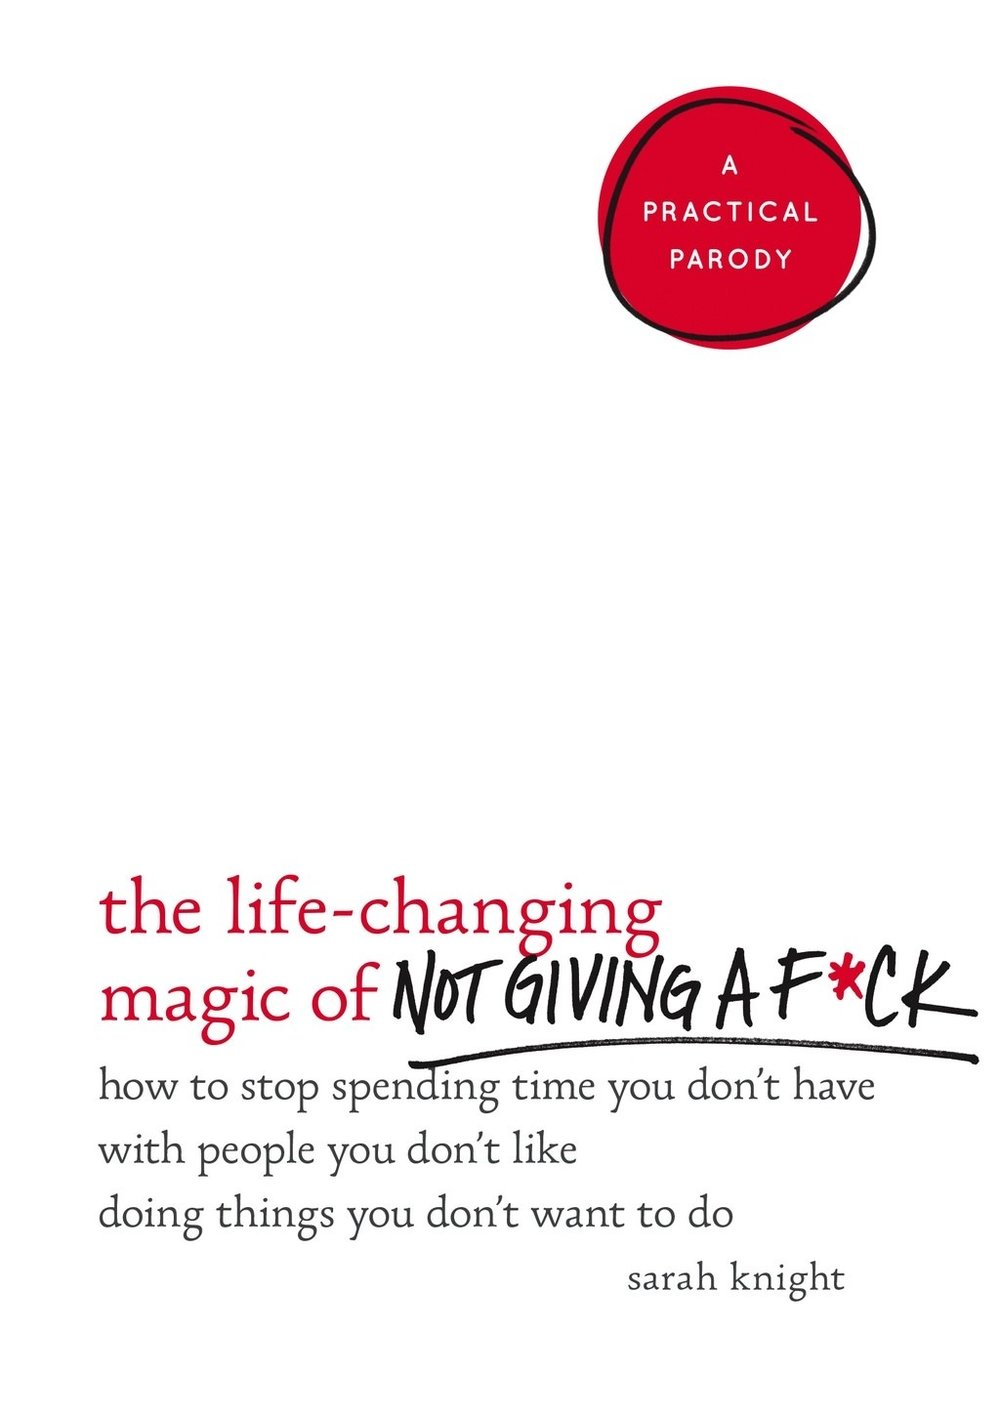 The Life-Changing Magic of Not Giving a F**K by Sarah Knigh